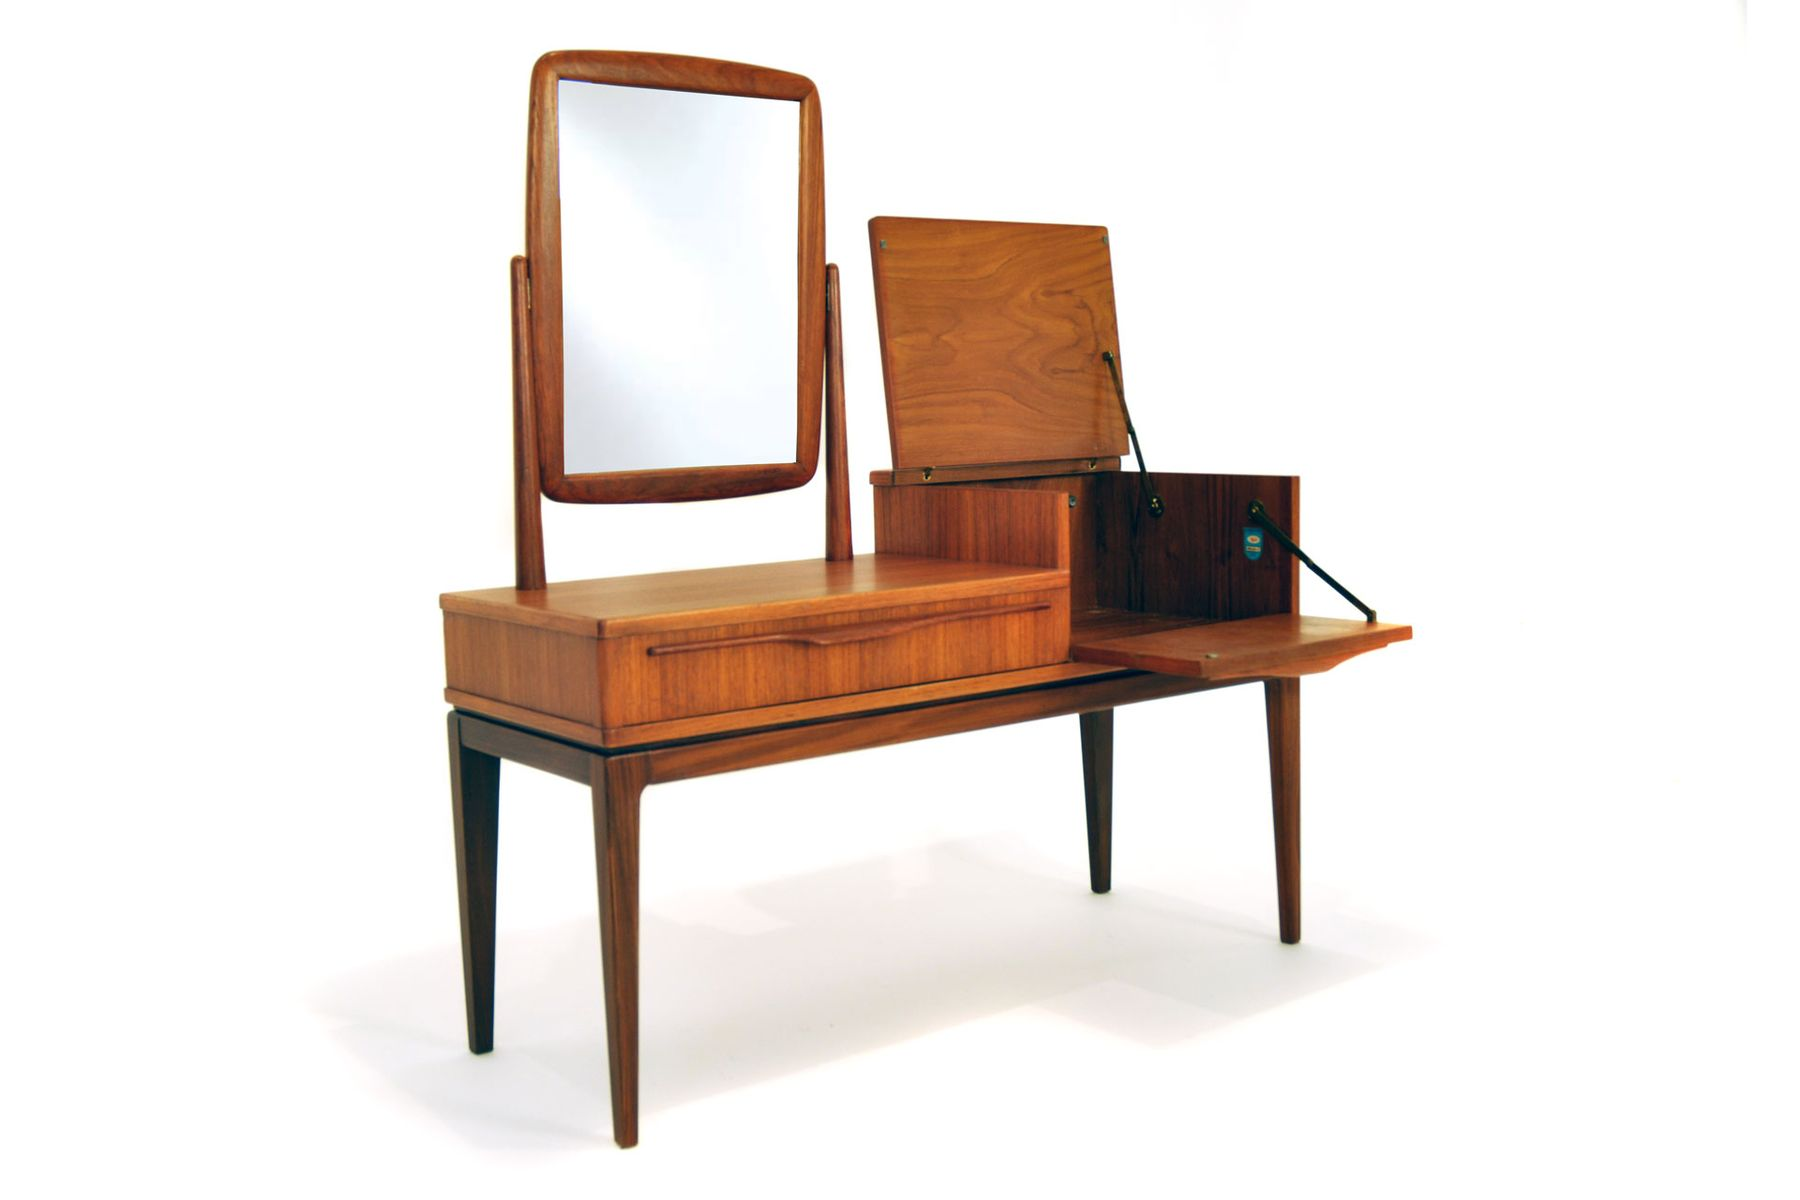 dressing table from ameublement nf meuble 212 1960s for